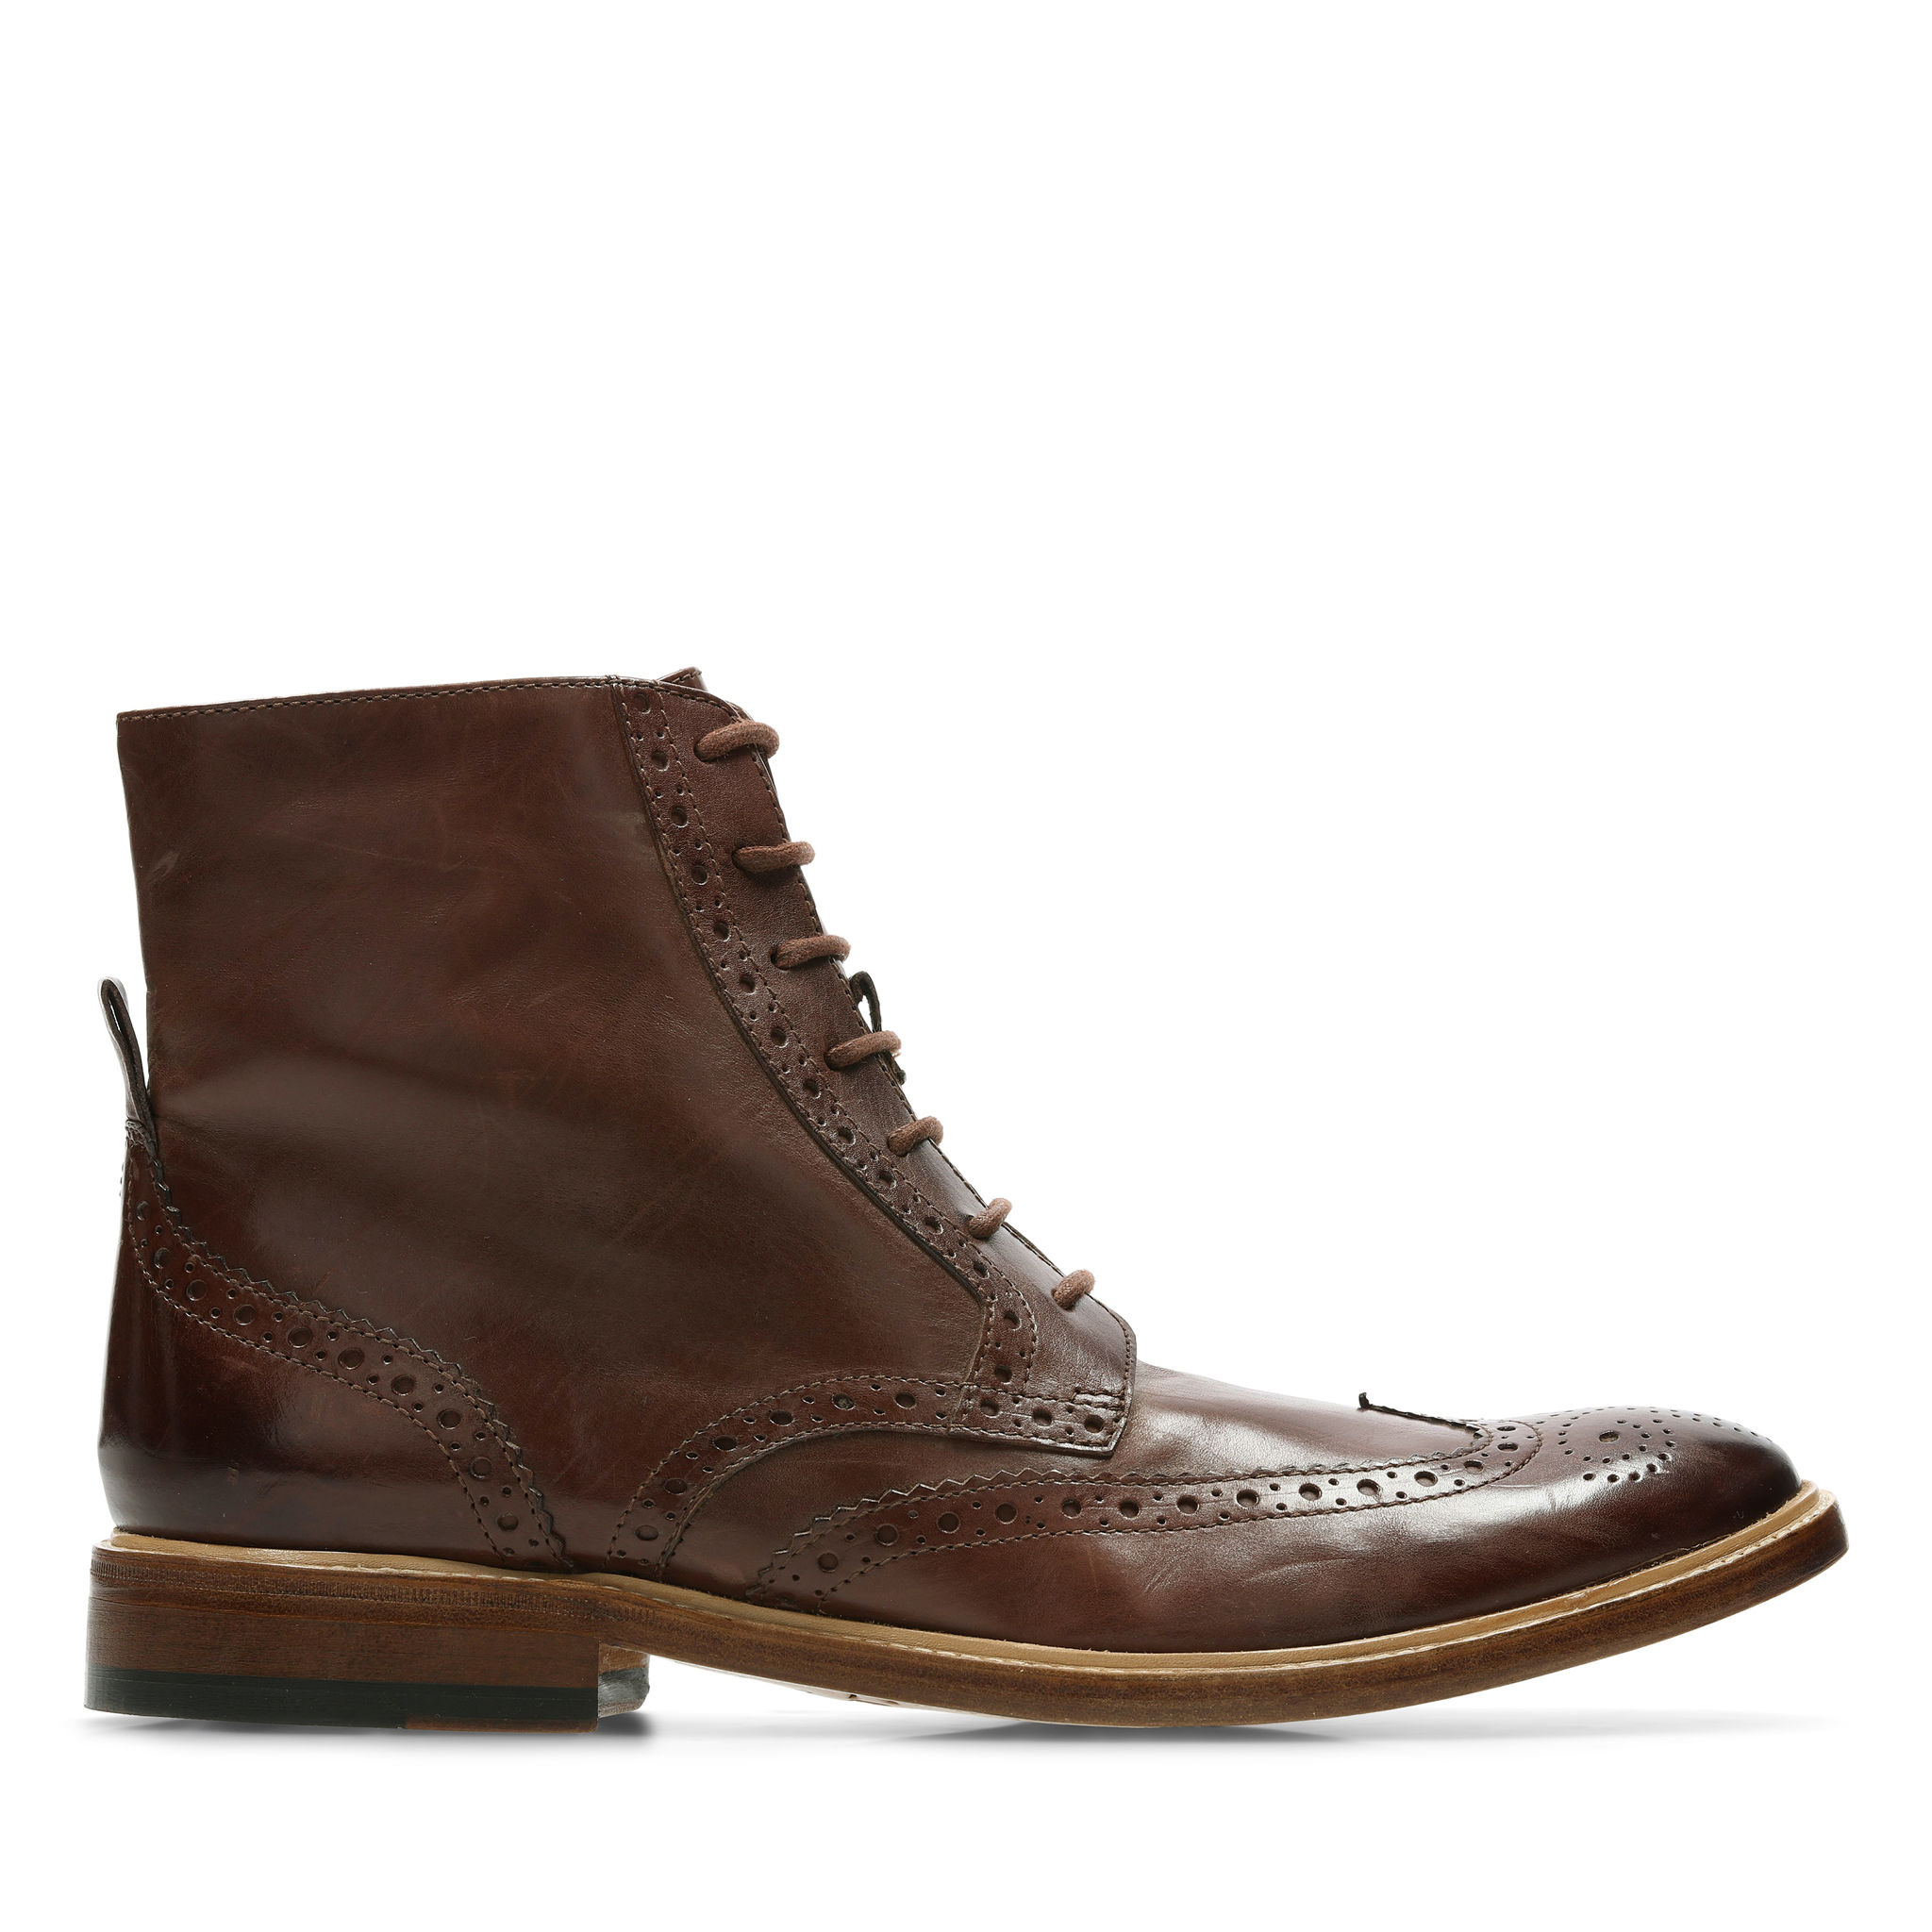 James Hi Boots by Clarks